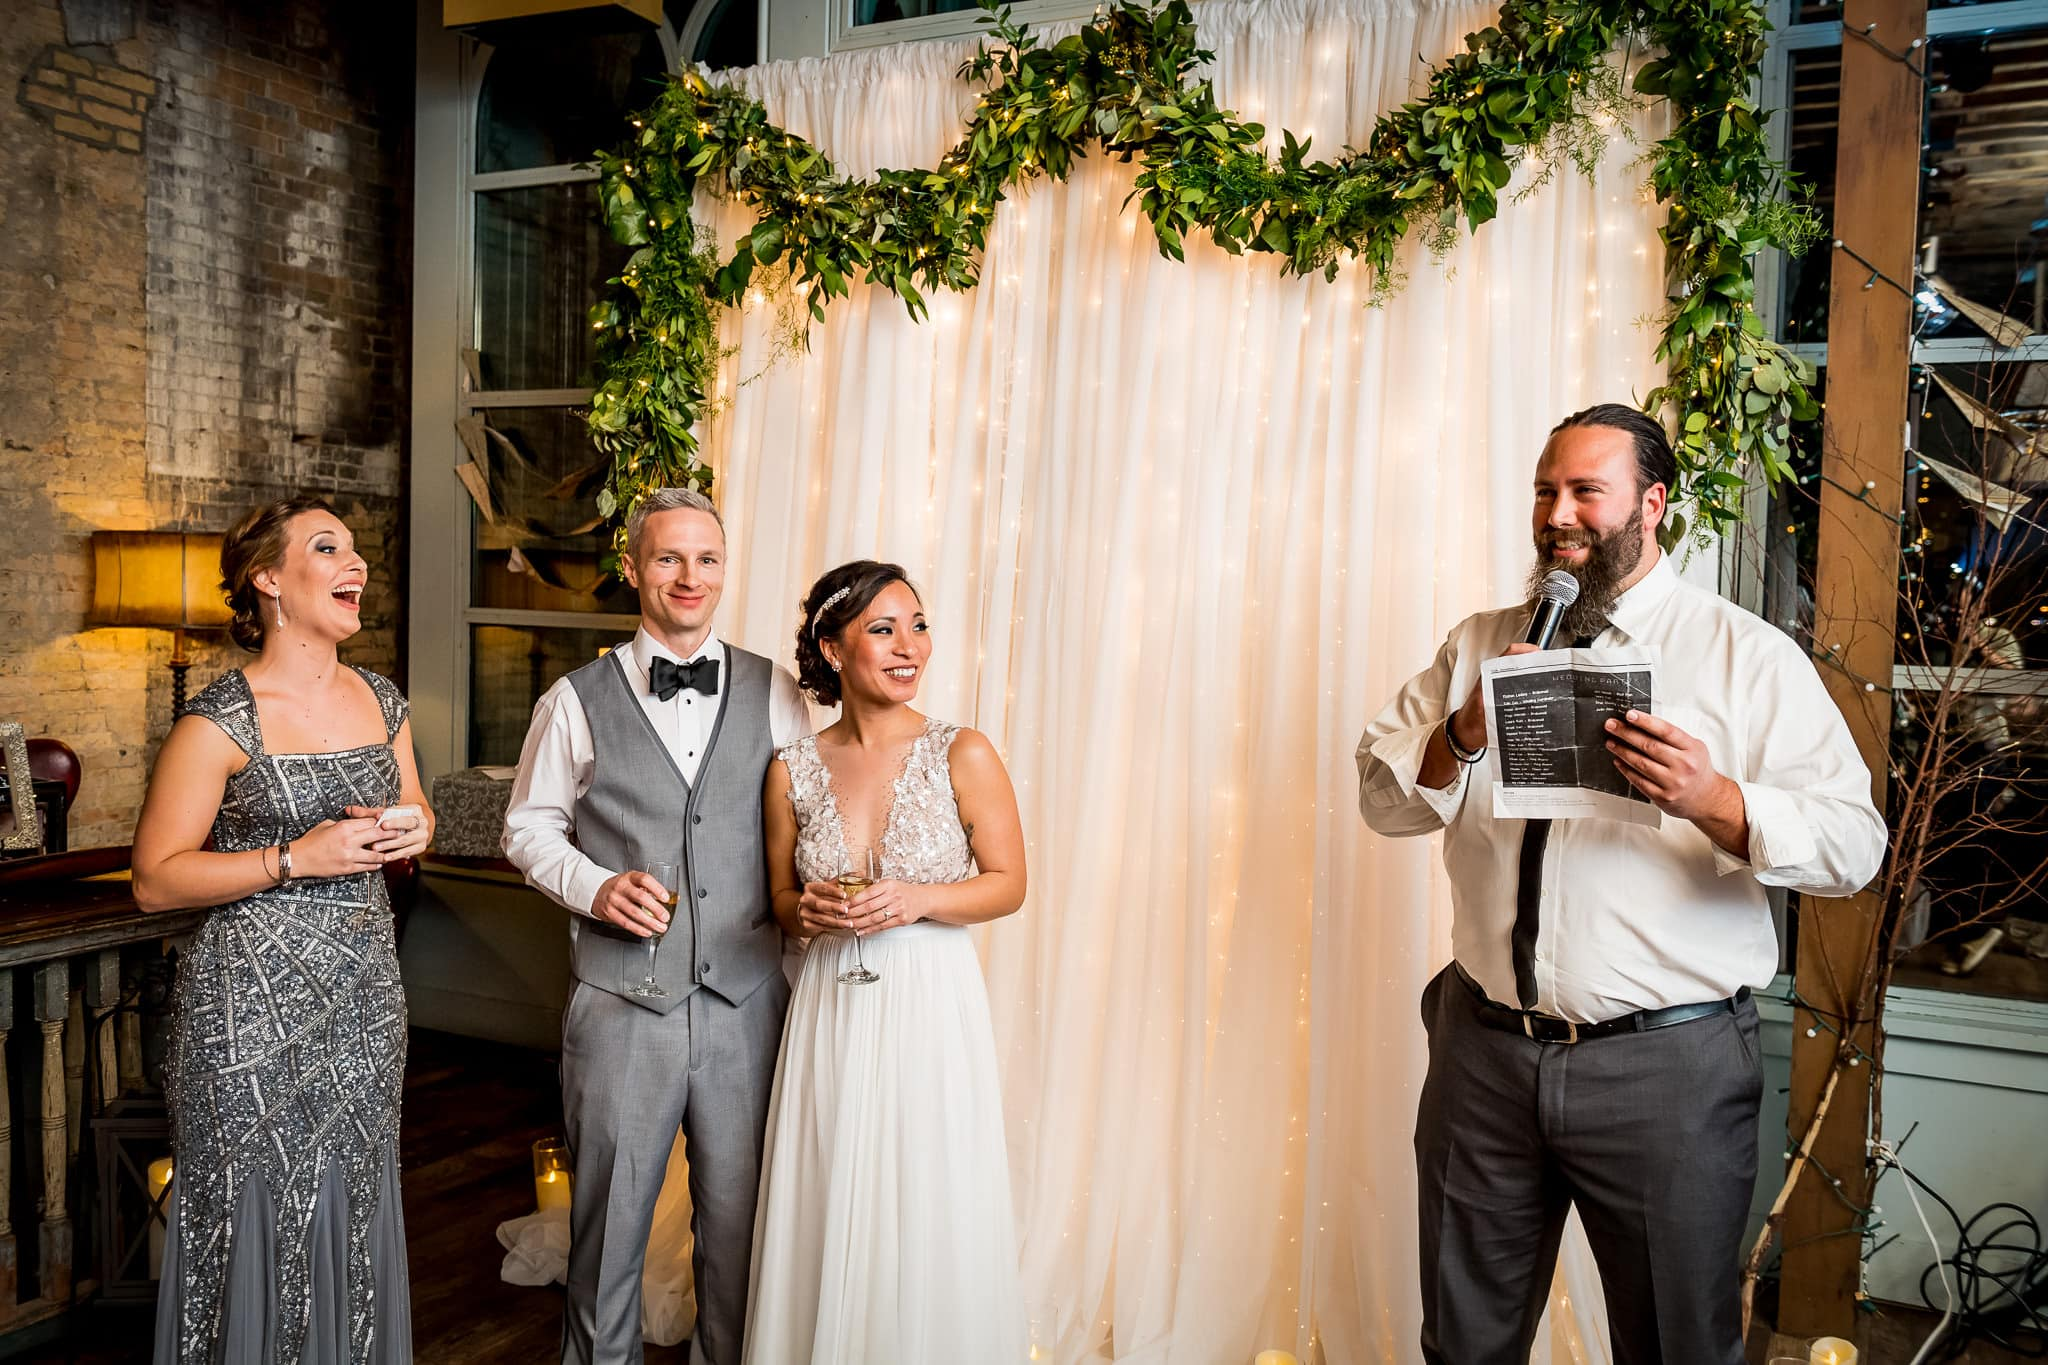 Best Man speech in the River Room at Aster Cafe during the Wedding Reception